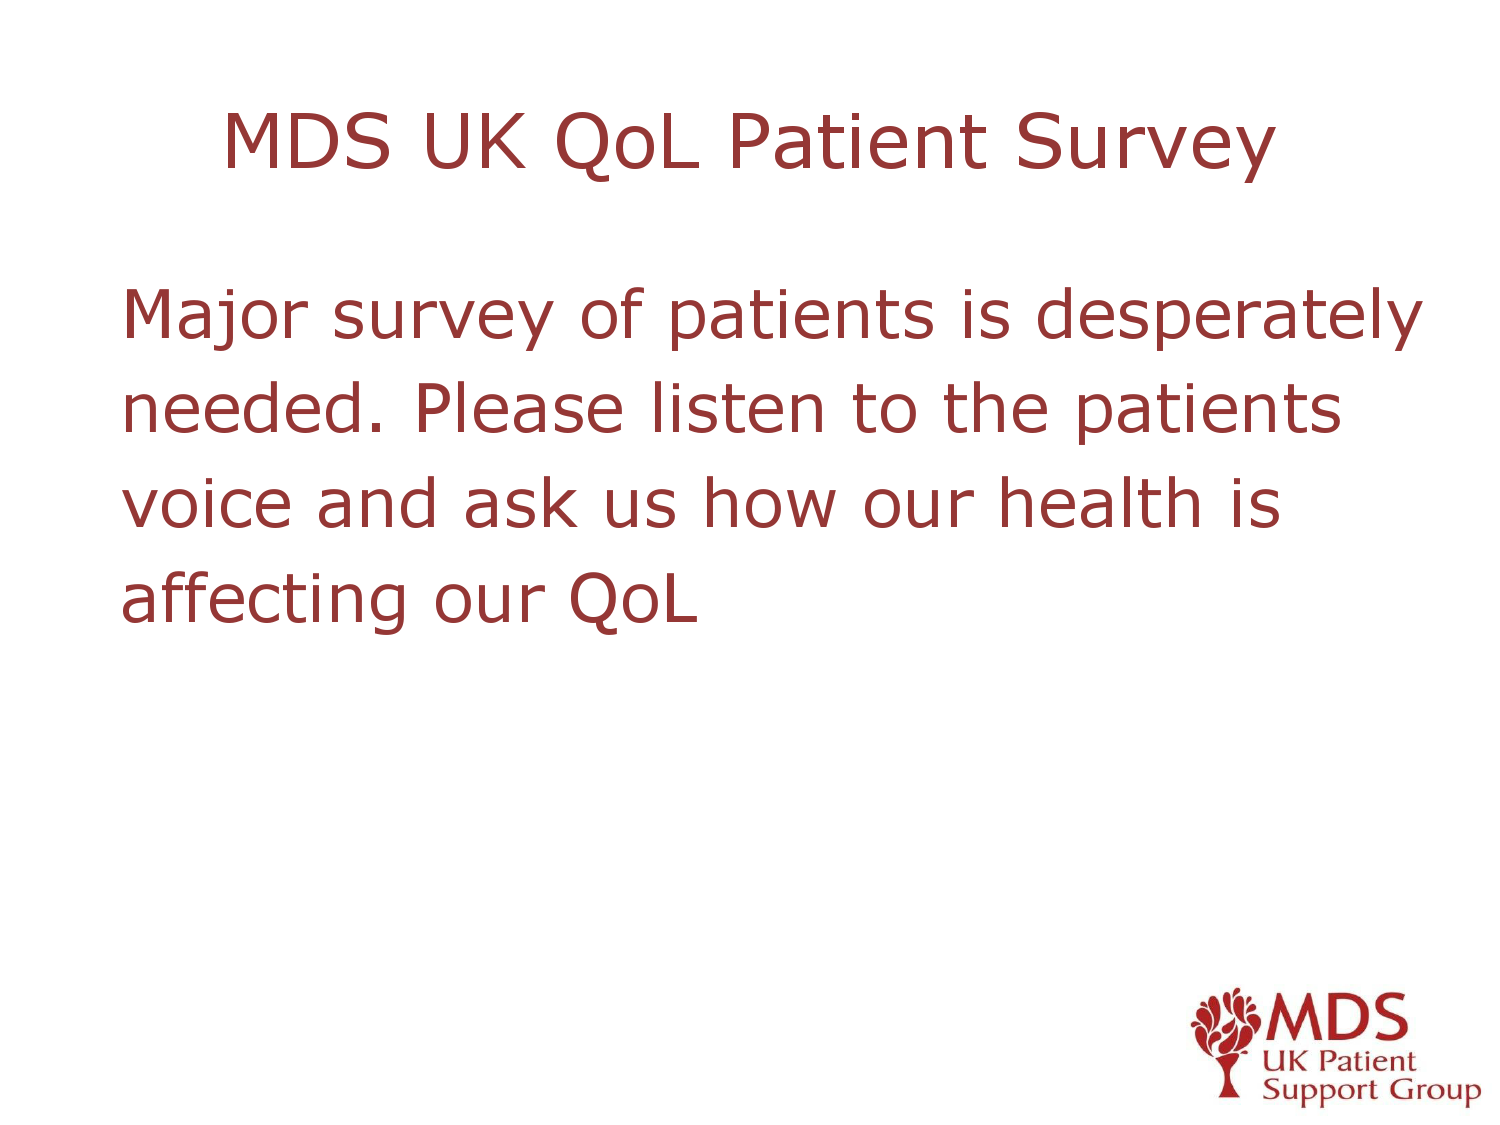 uk-mds-forum-slides-2014-slide-22.png